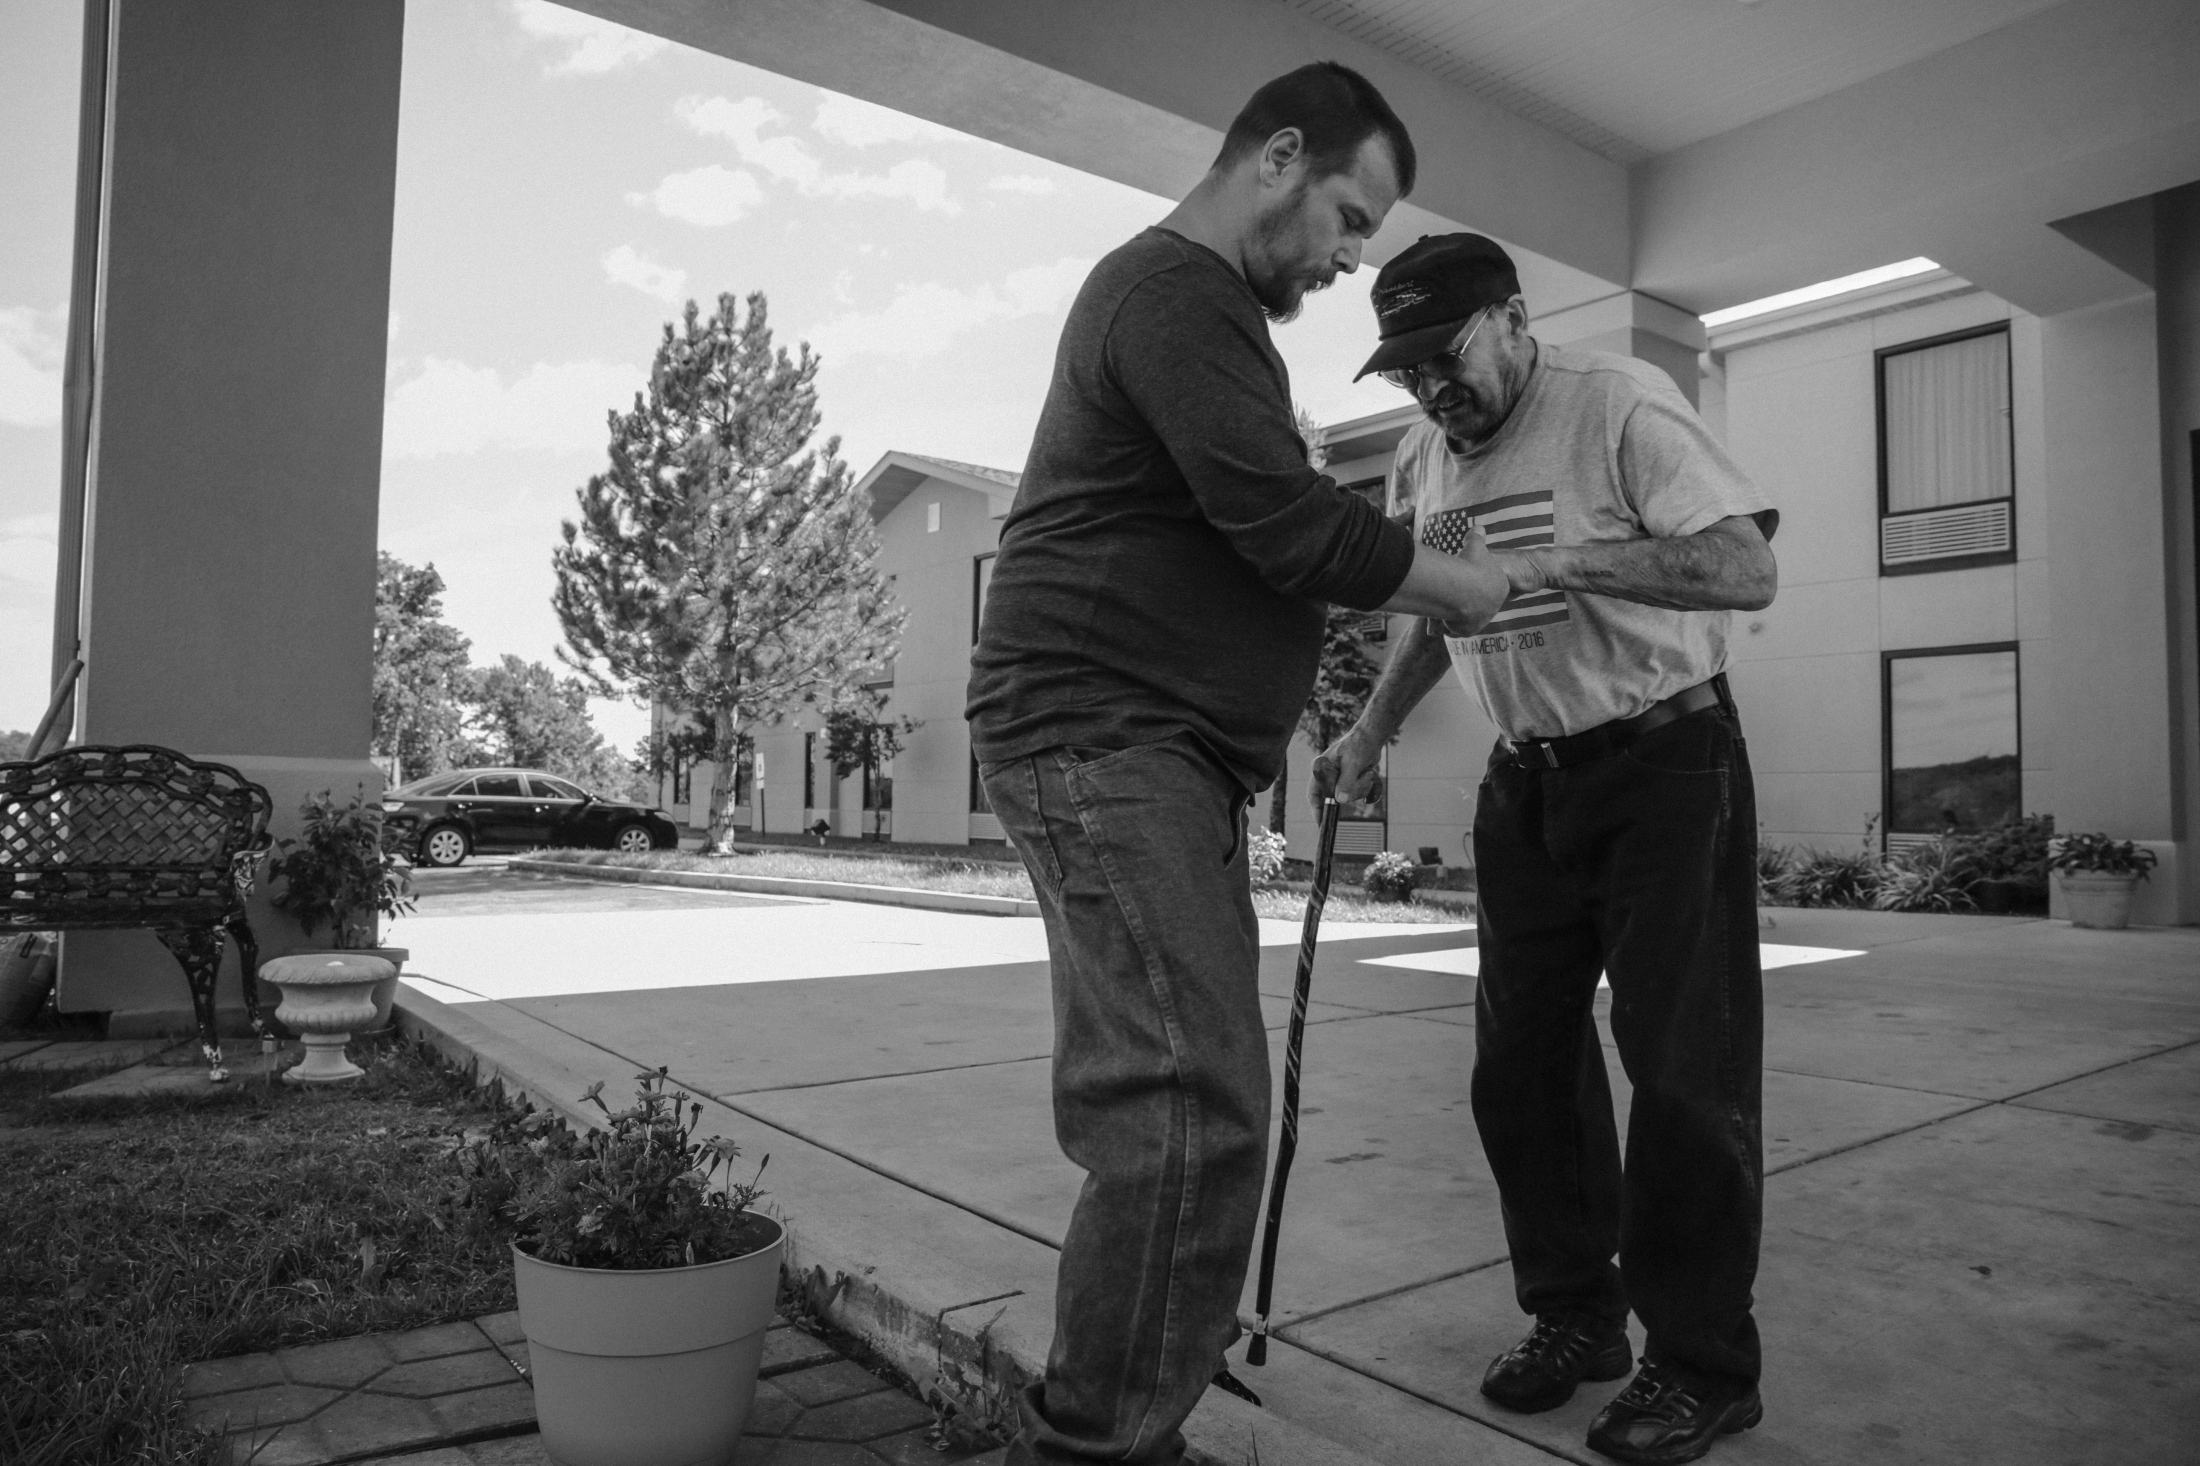 Anthony assists Ty while taking a walk together outside their motel room. Six months ago, Anthony stopped using meth after two decades to become a responsible person. Since then, he has spent most of his days caring for the family.